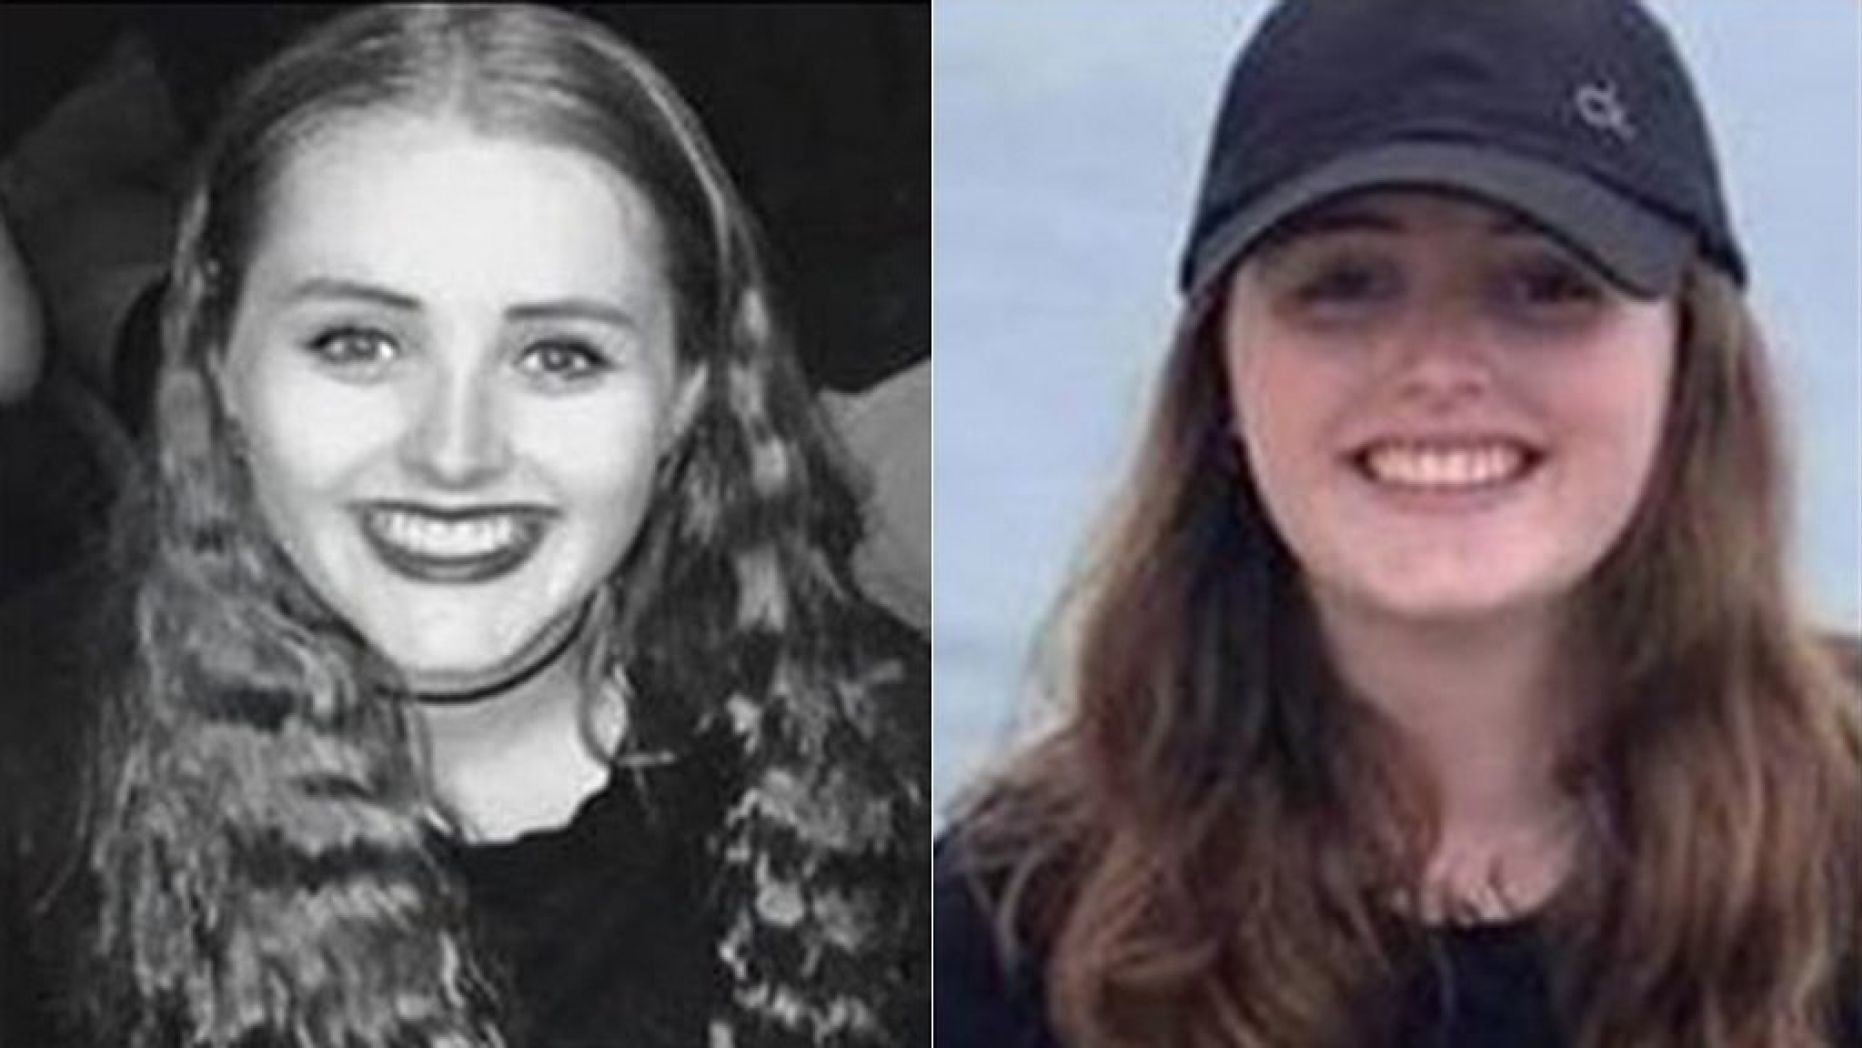 New Zealand police said Grace Millane was murdered by a man will be charged with murder.